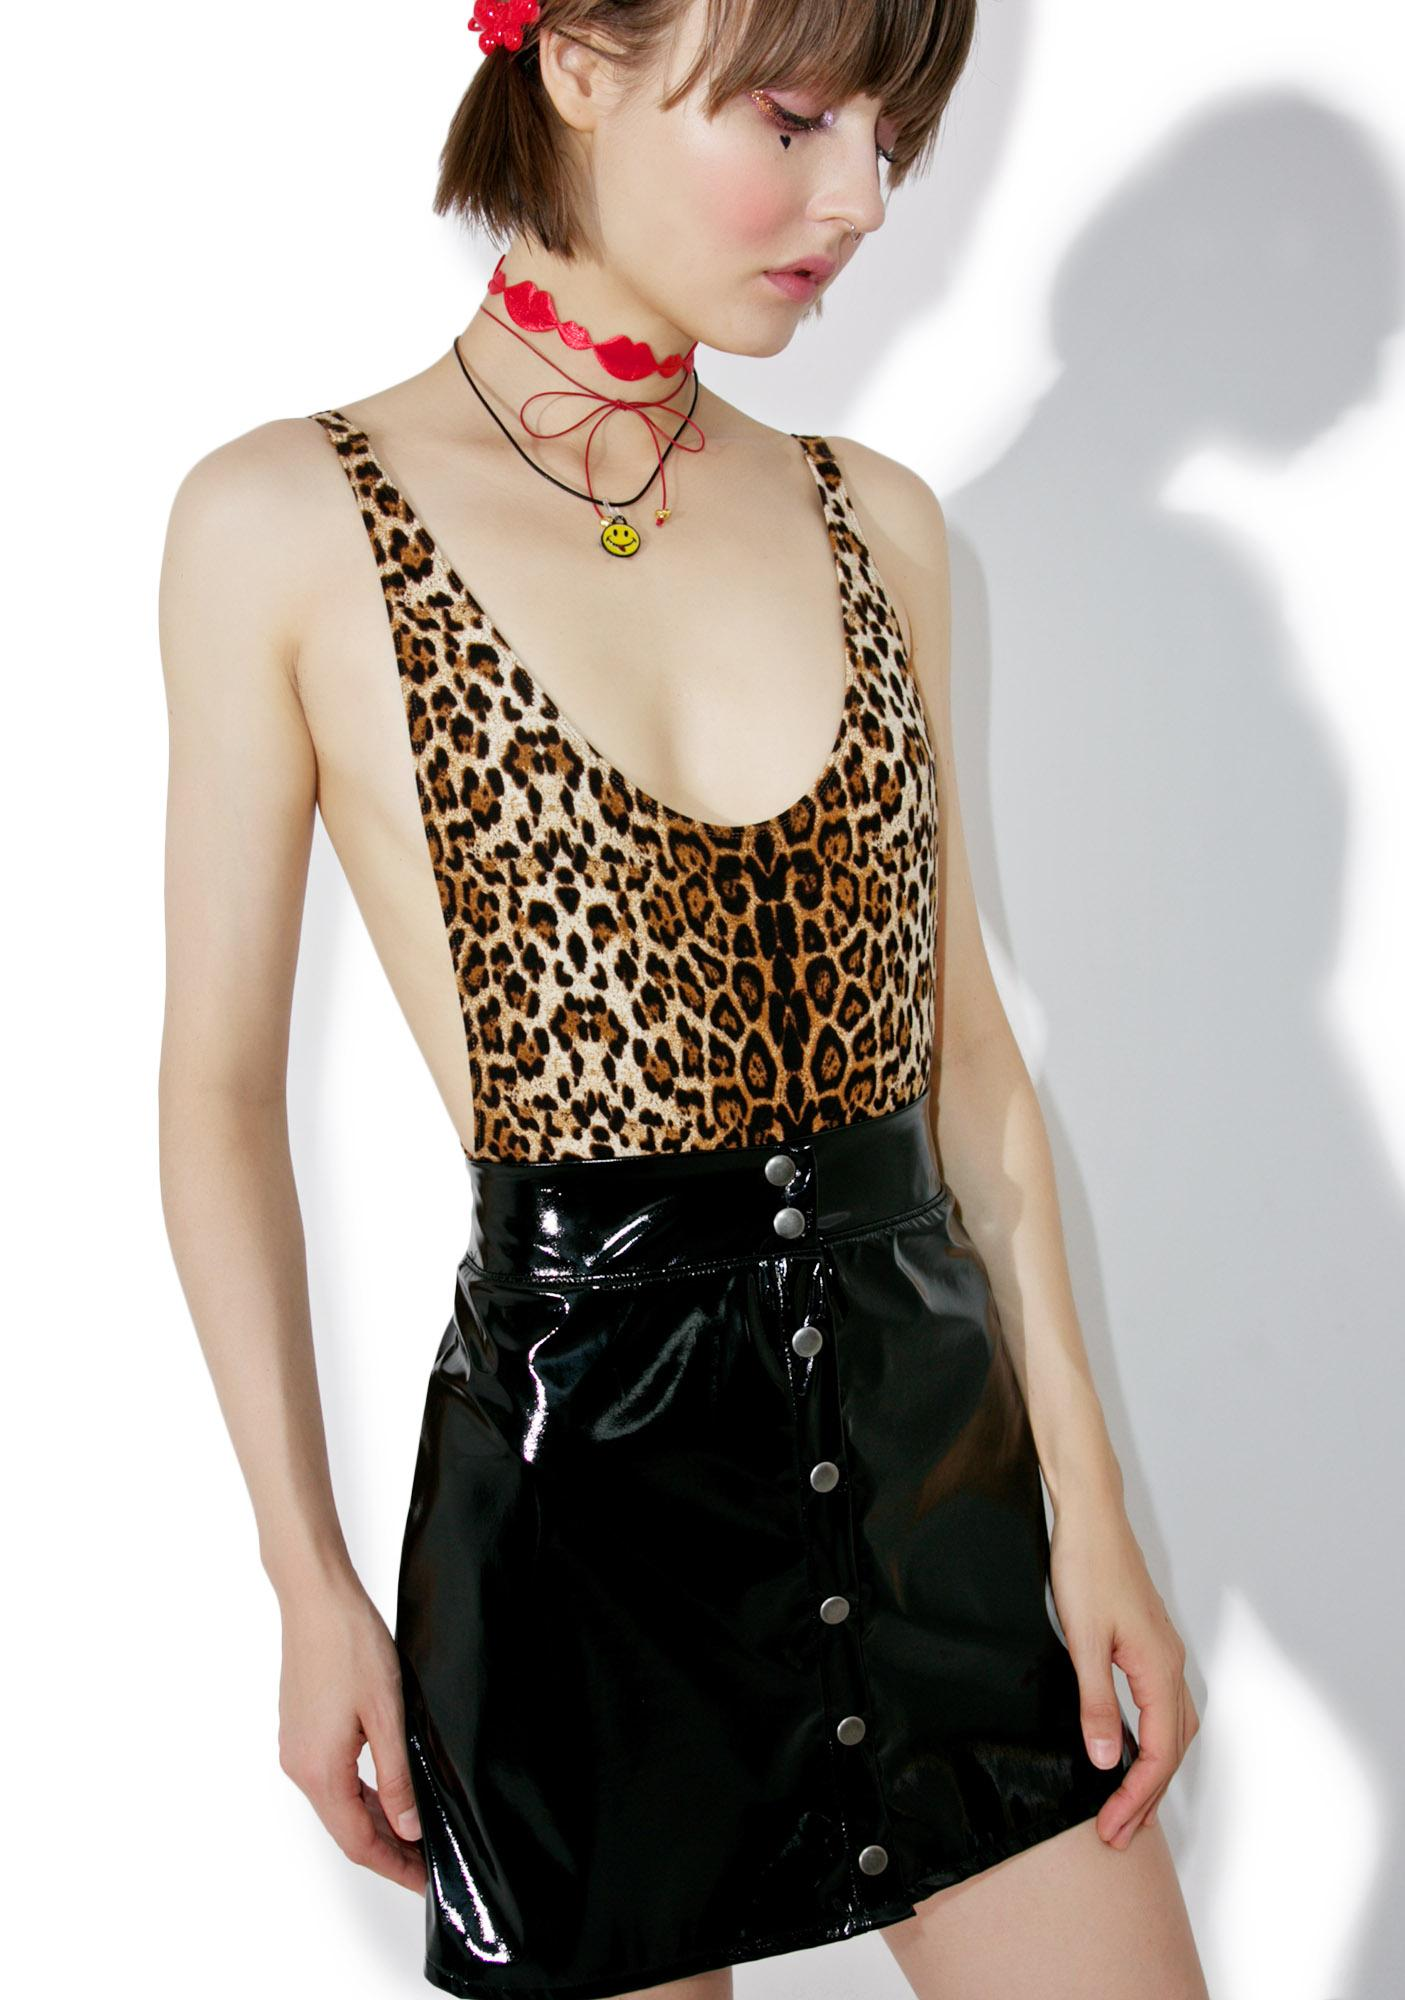 Wild Woman Bodysuit